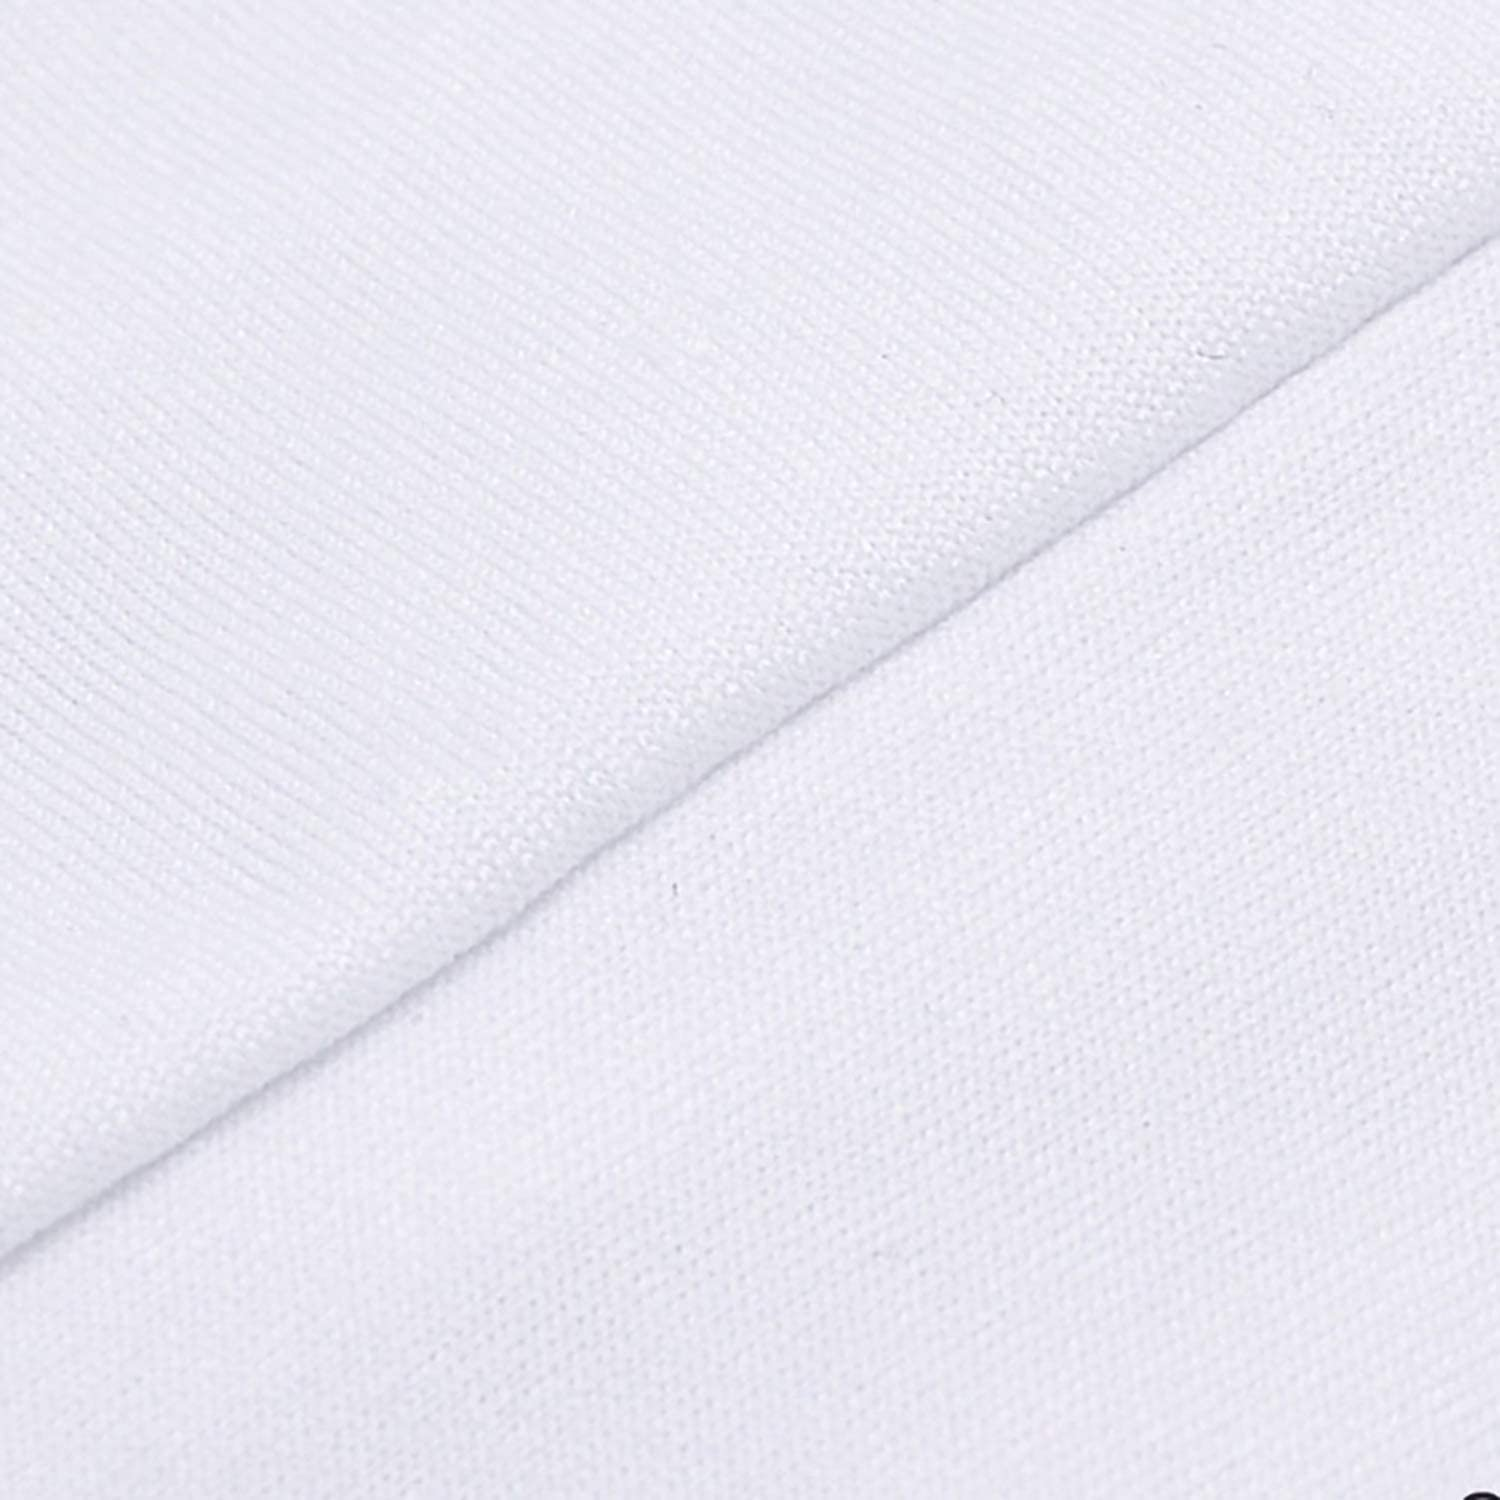 Polyester /& Spandex Chair Covers for Wedding Party Dining 100 Pack Banquet Chair Covers Spec101 White Chair Covers